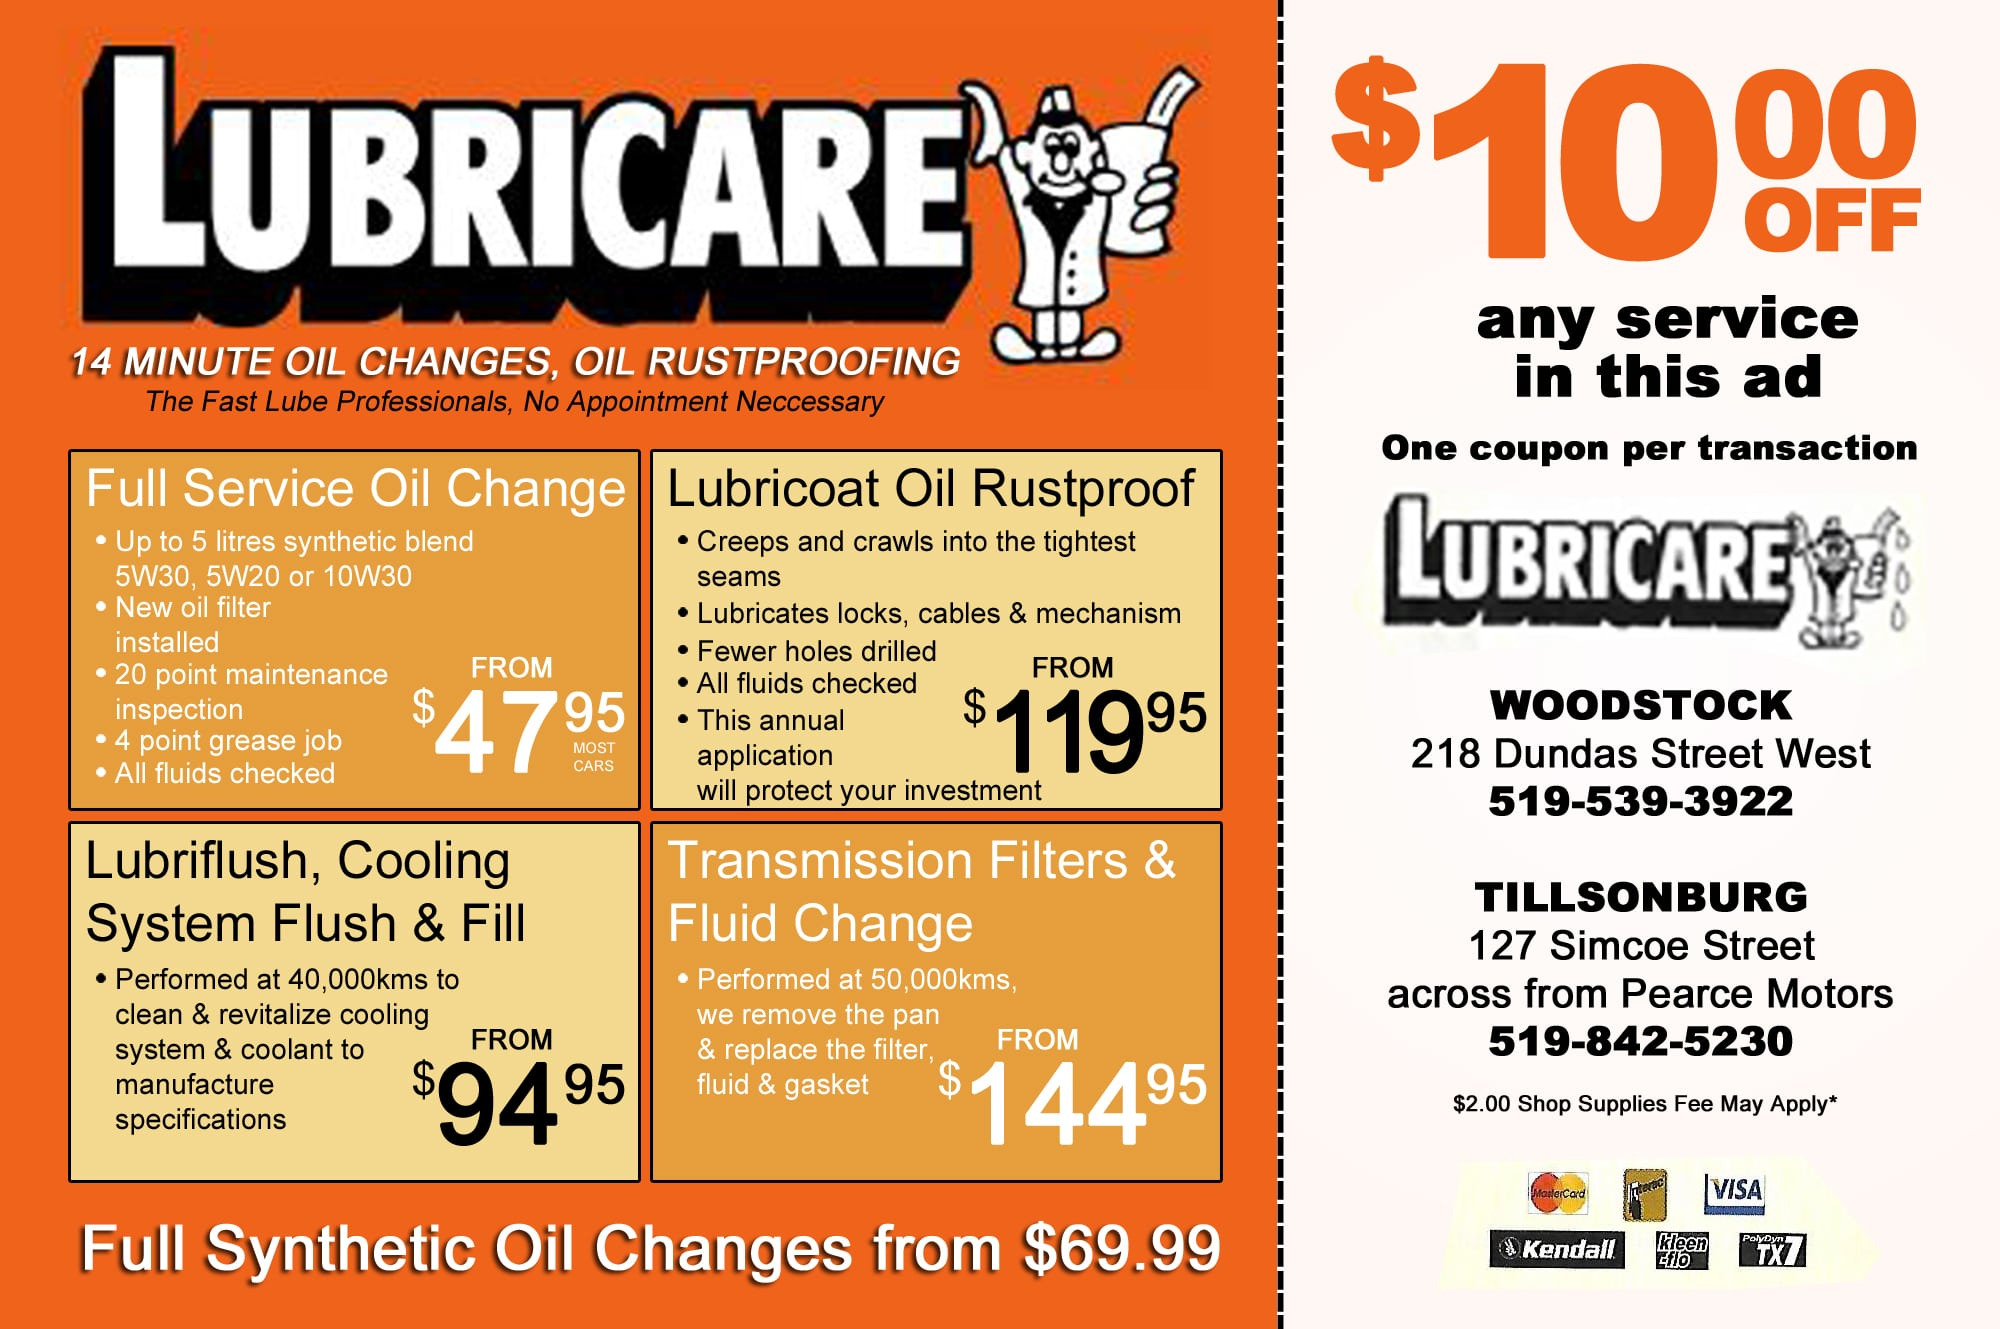 LUBRICARE-COUPON